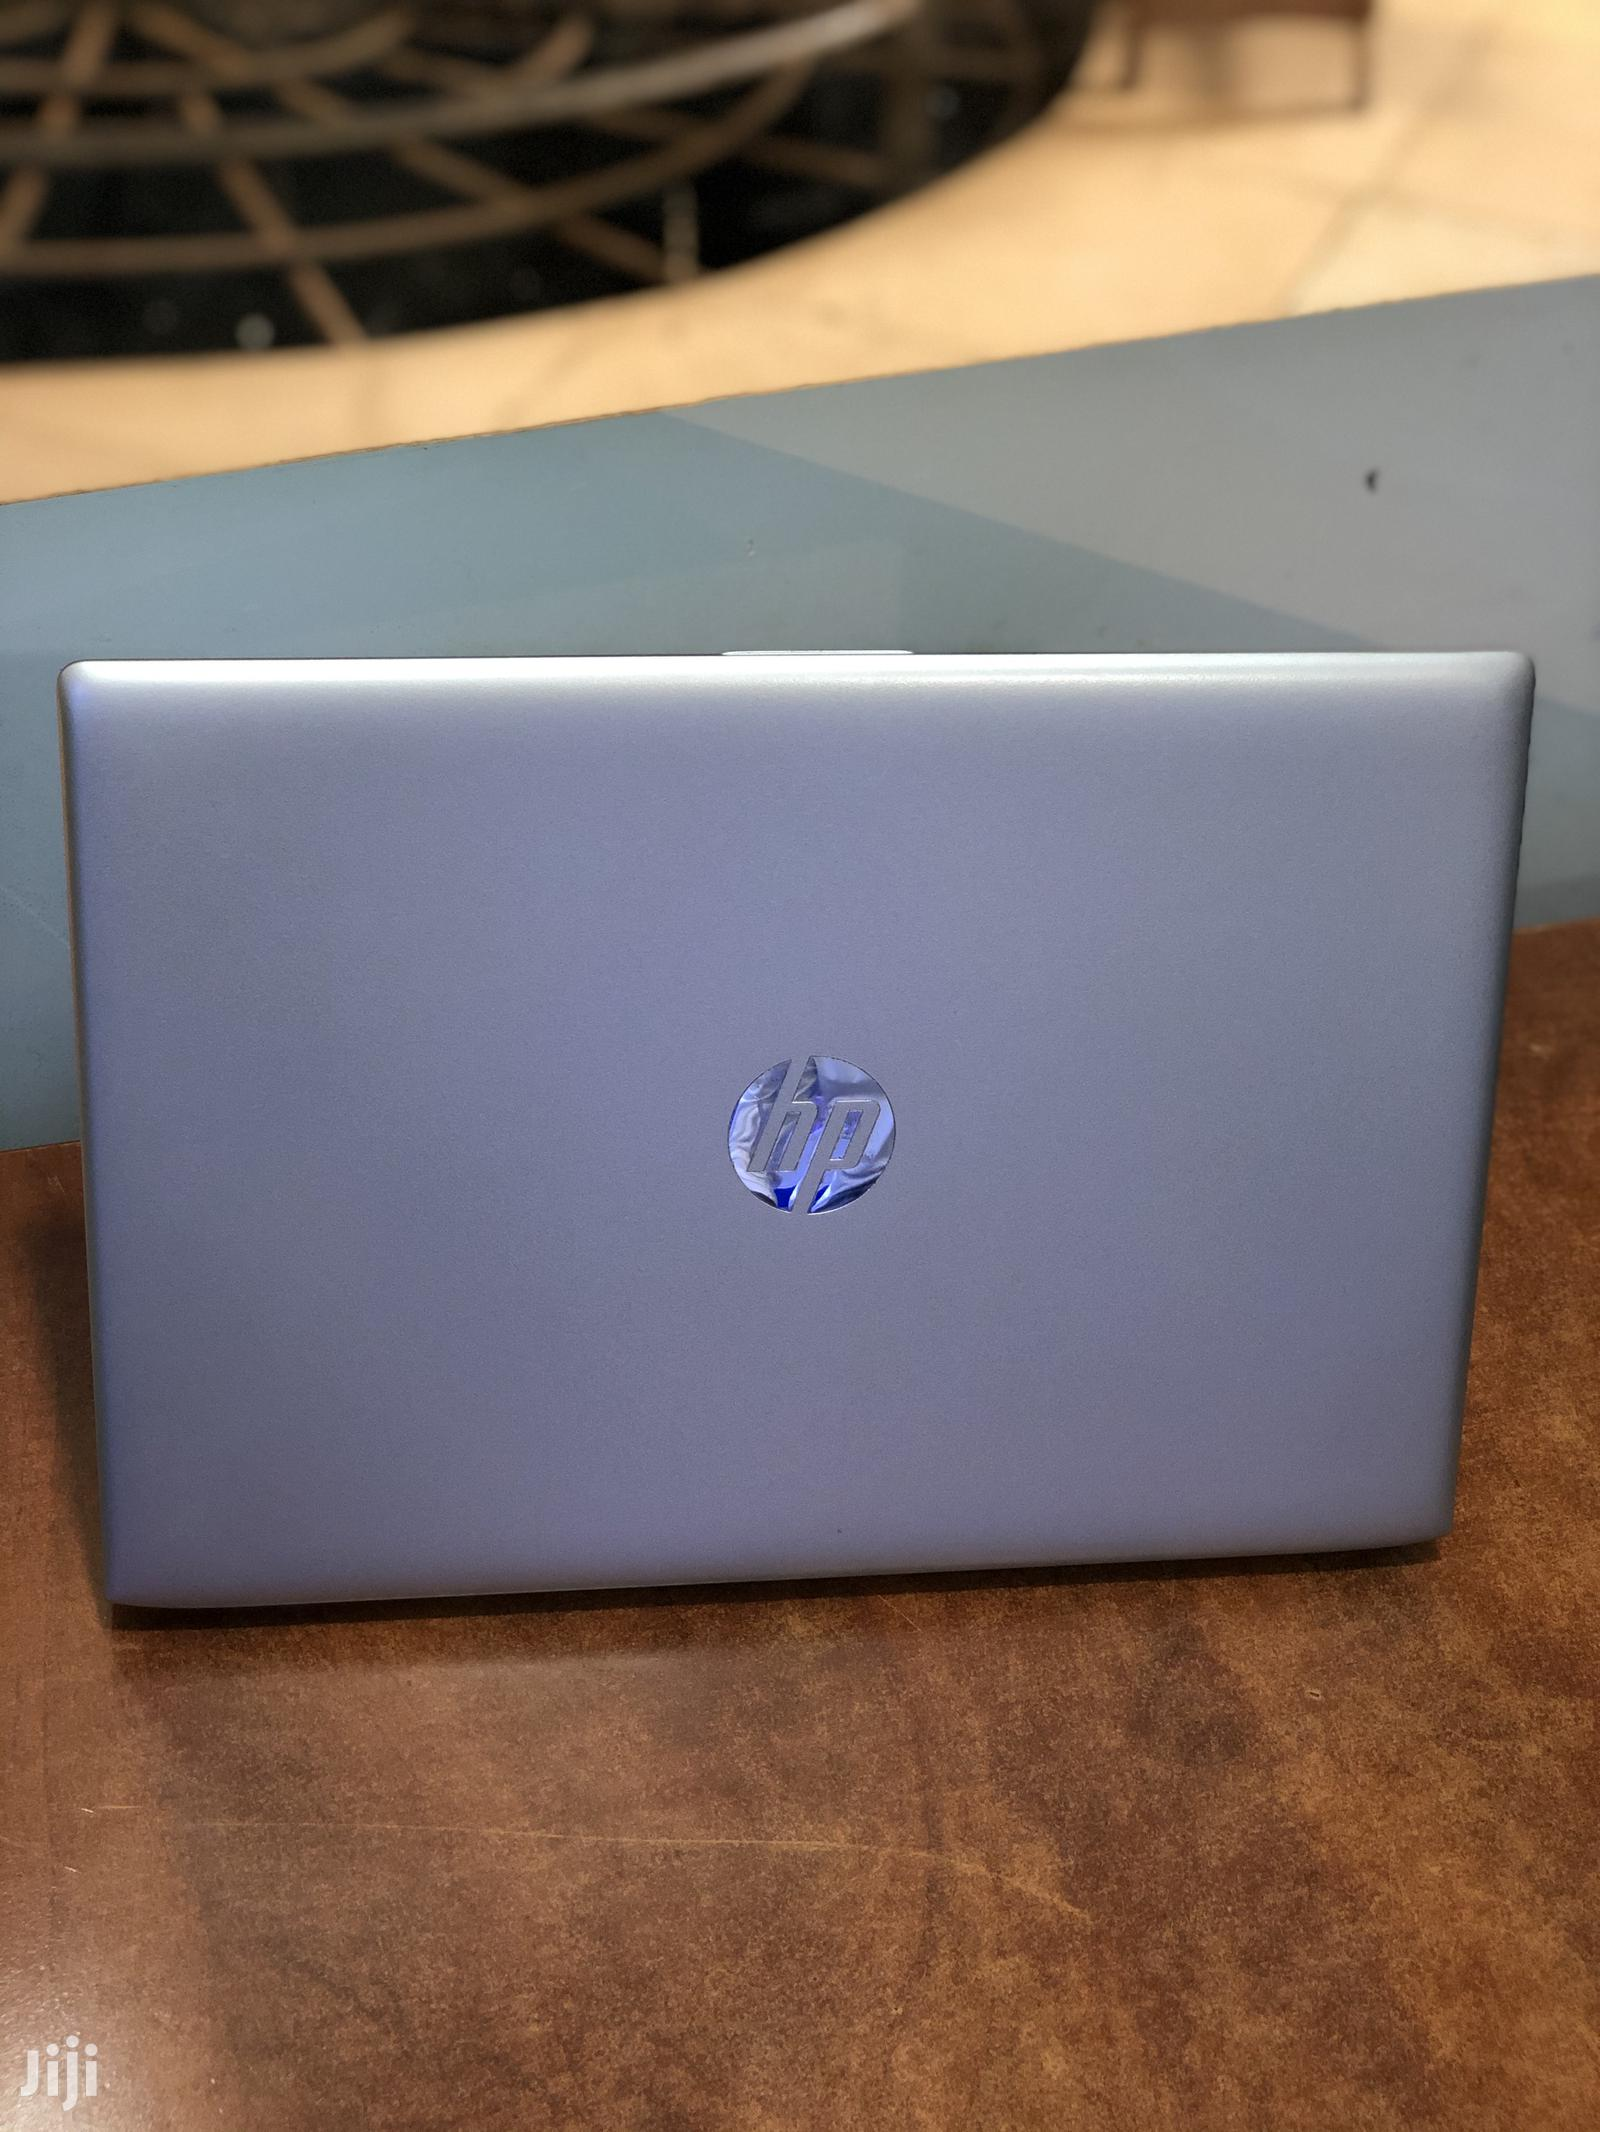 New Laptop HP ProBook 450 G5 8GB Intel Core I5 SSHD (Hybrid) 500GB | Laptops & Computers for sale in Kampala, Central Region, Uganda